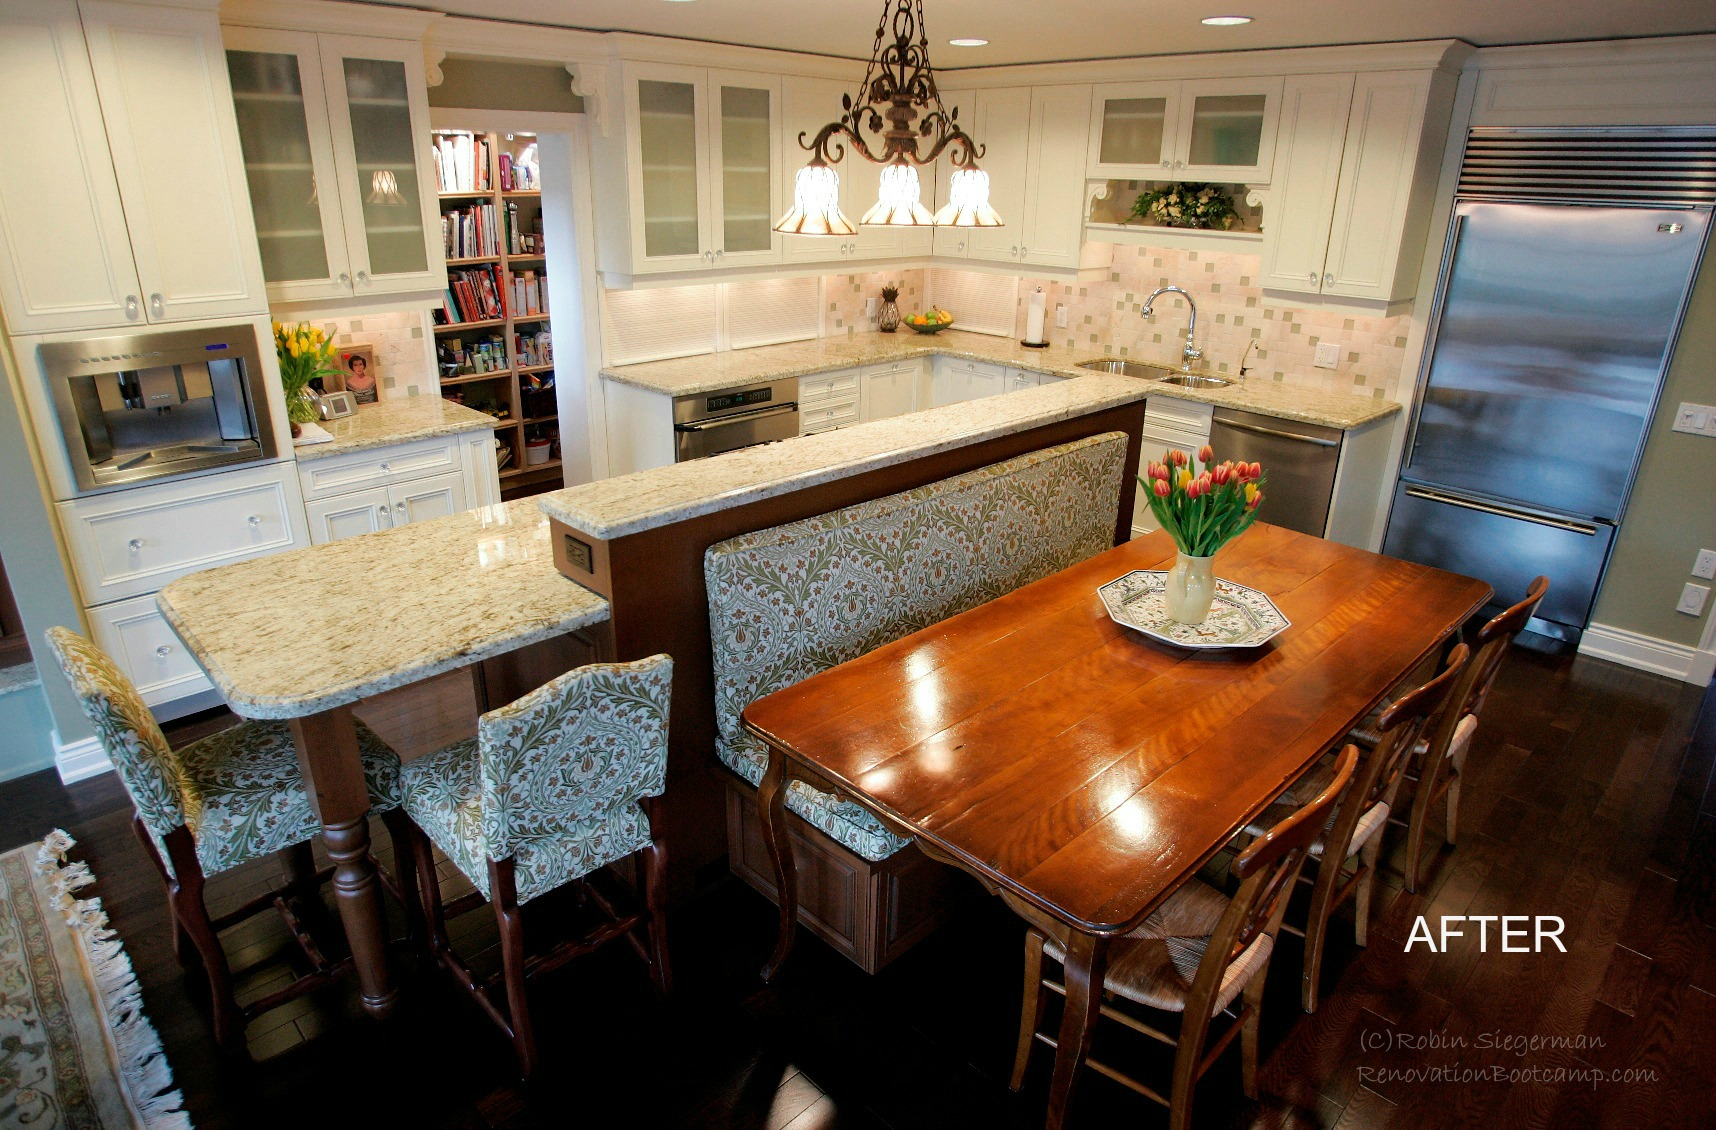 7 rules under cabinet lighting kitchen cabinet lights Undercabinet lighting illuminates the work surface sieguzi